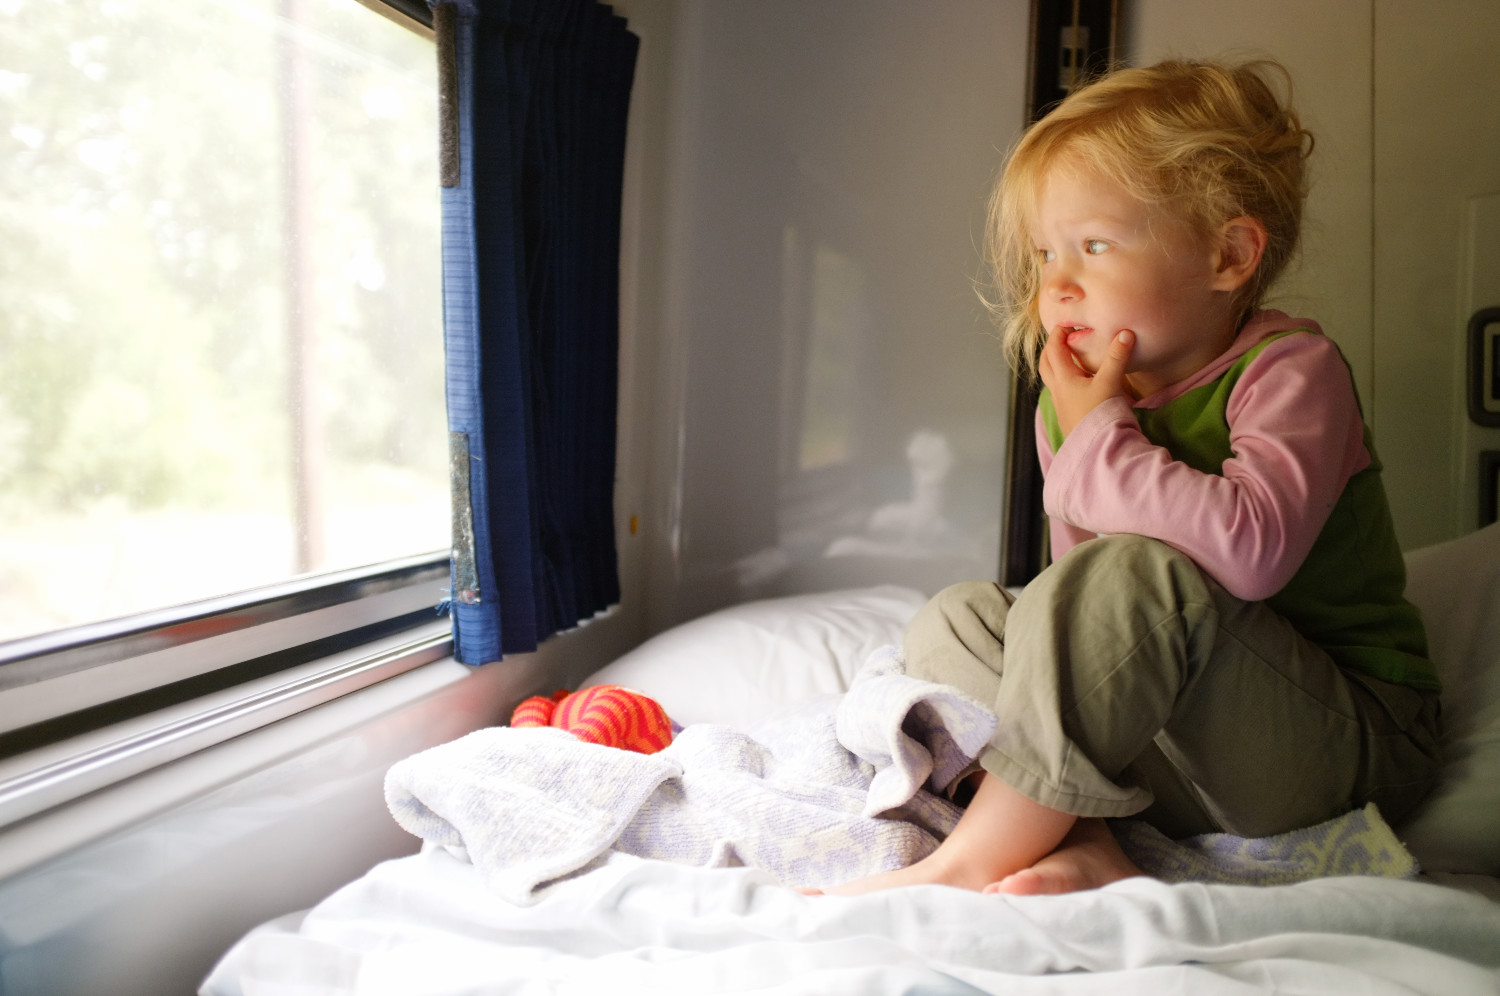 Kids have so much to look at and think about when staring out the window from the top bunk of a roomette.